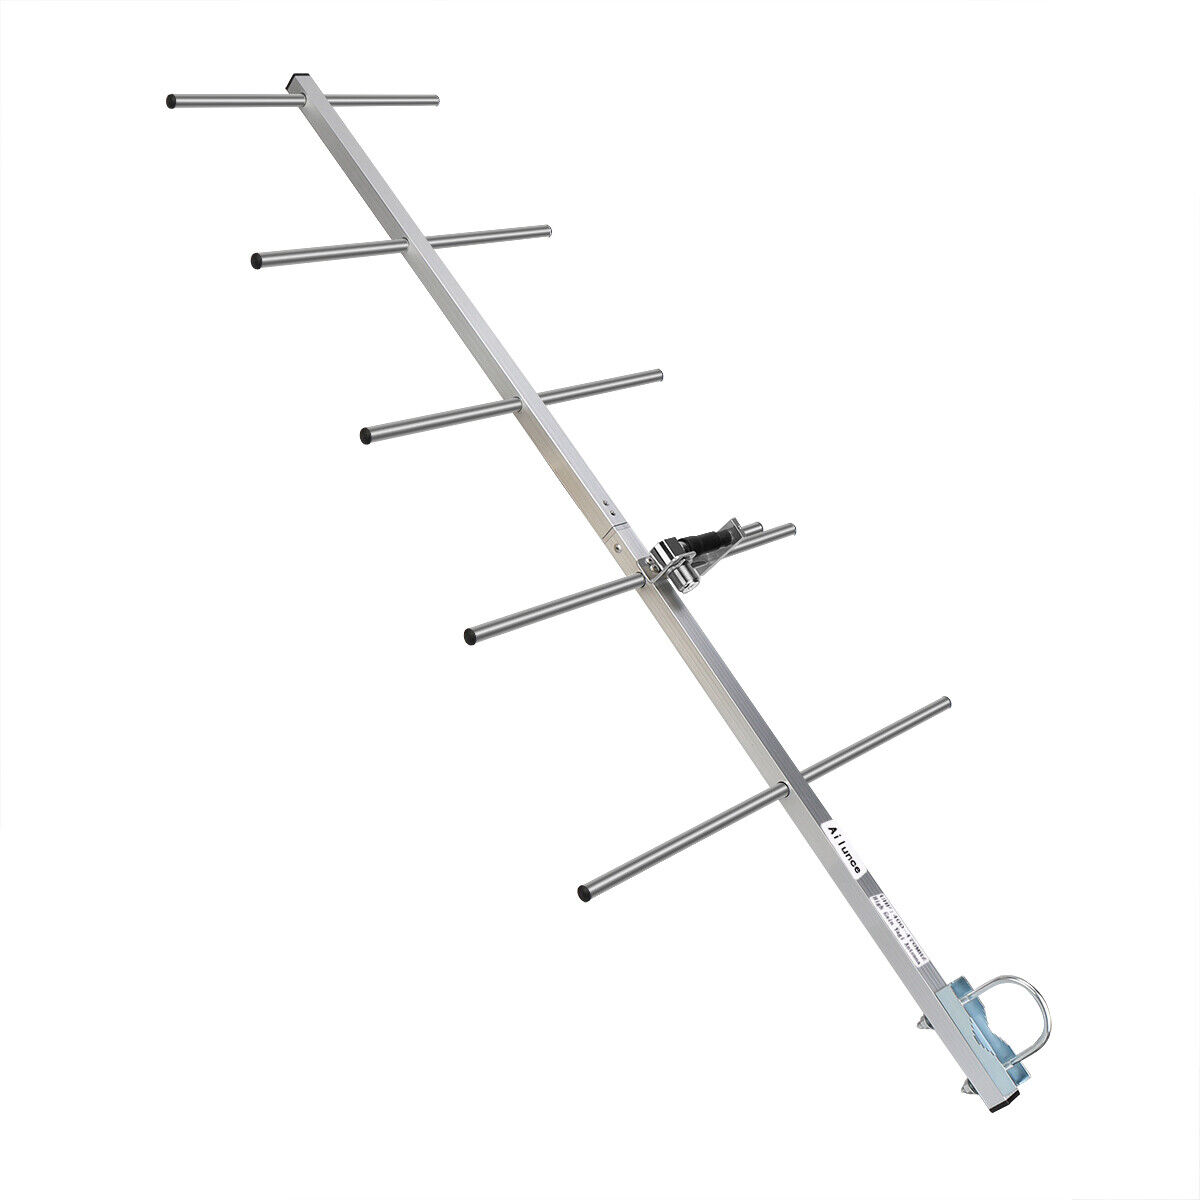 Ailunce Hd1 Ay03 Yagi Uhf Radio Antenna High Gain For